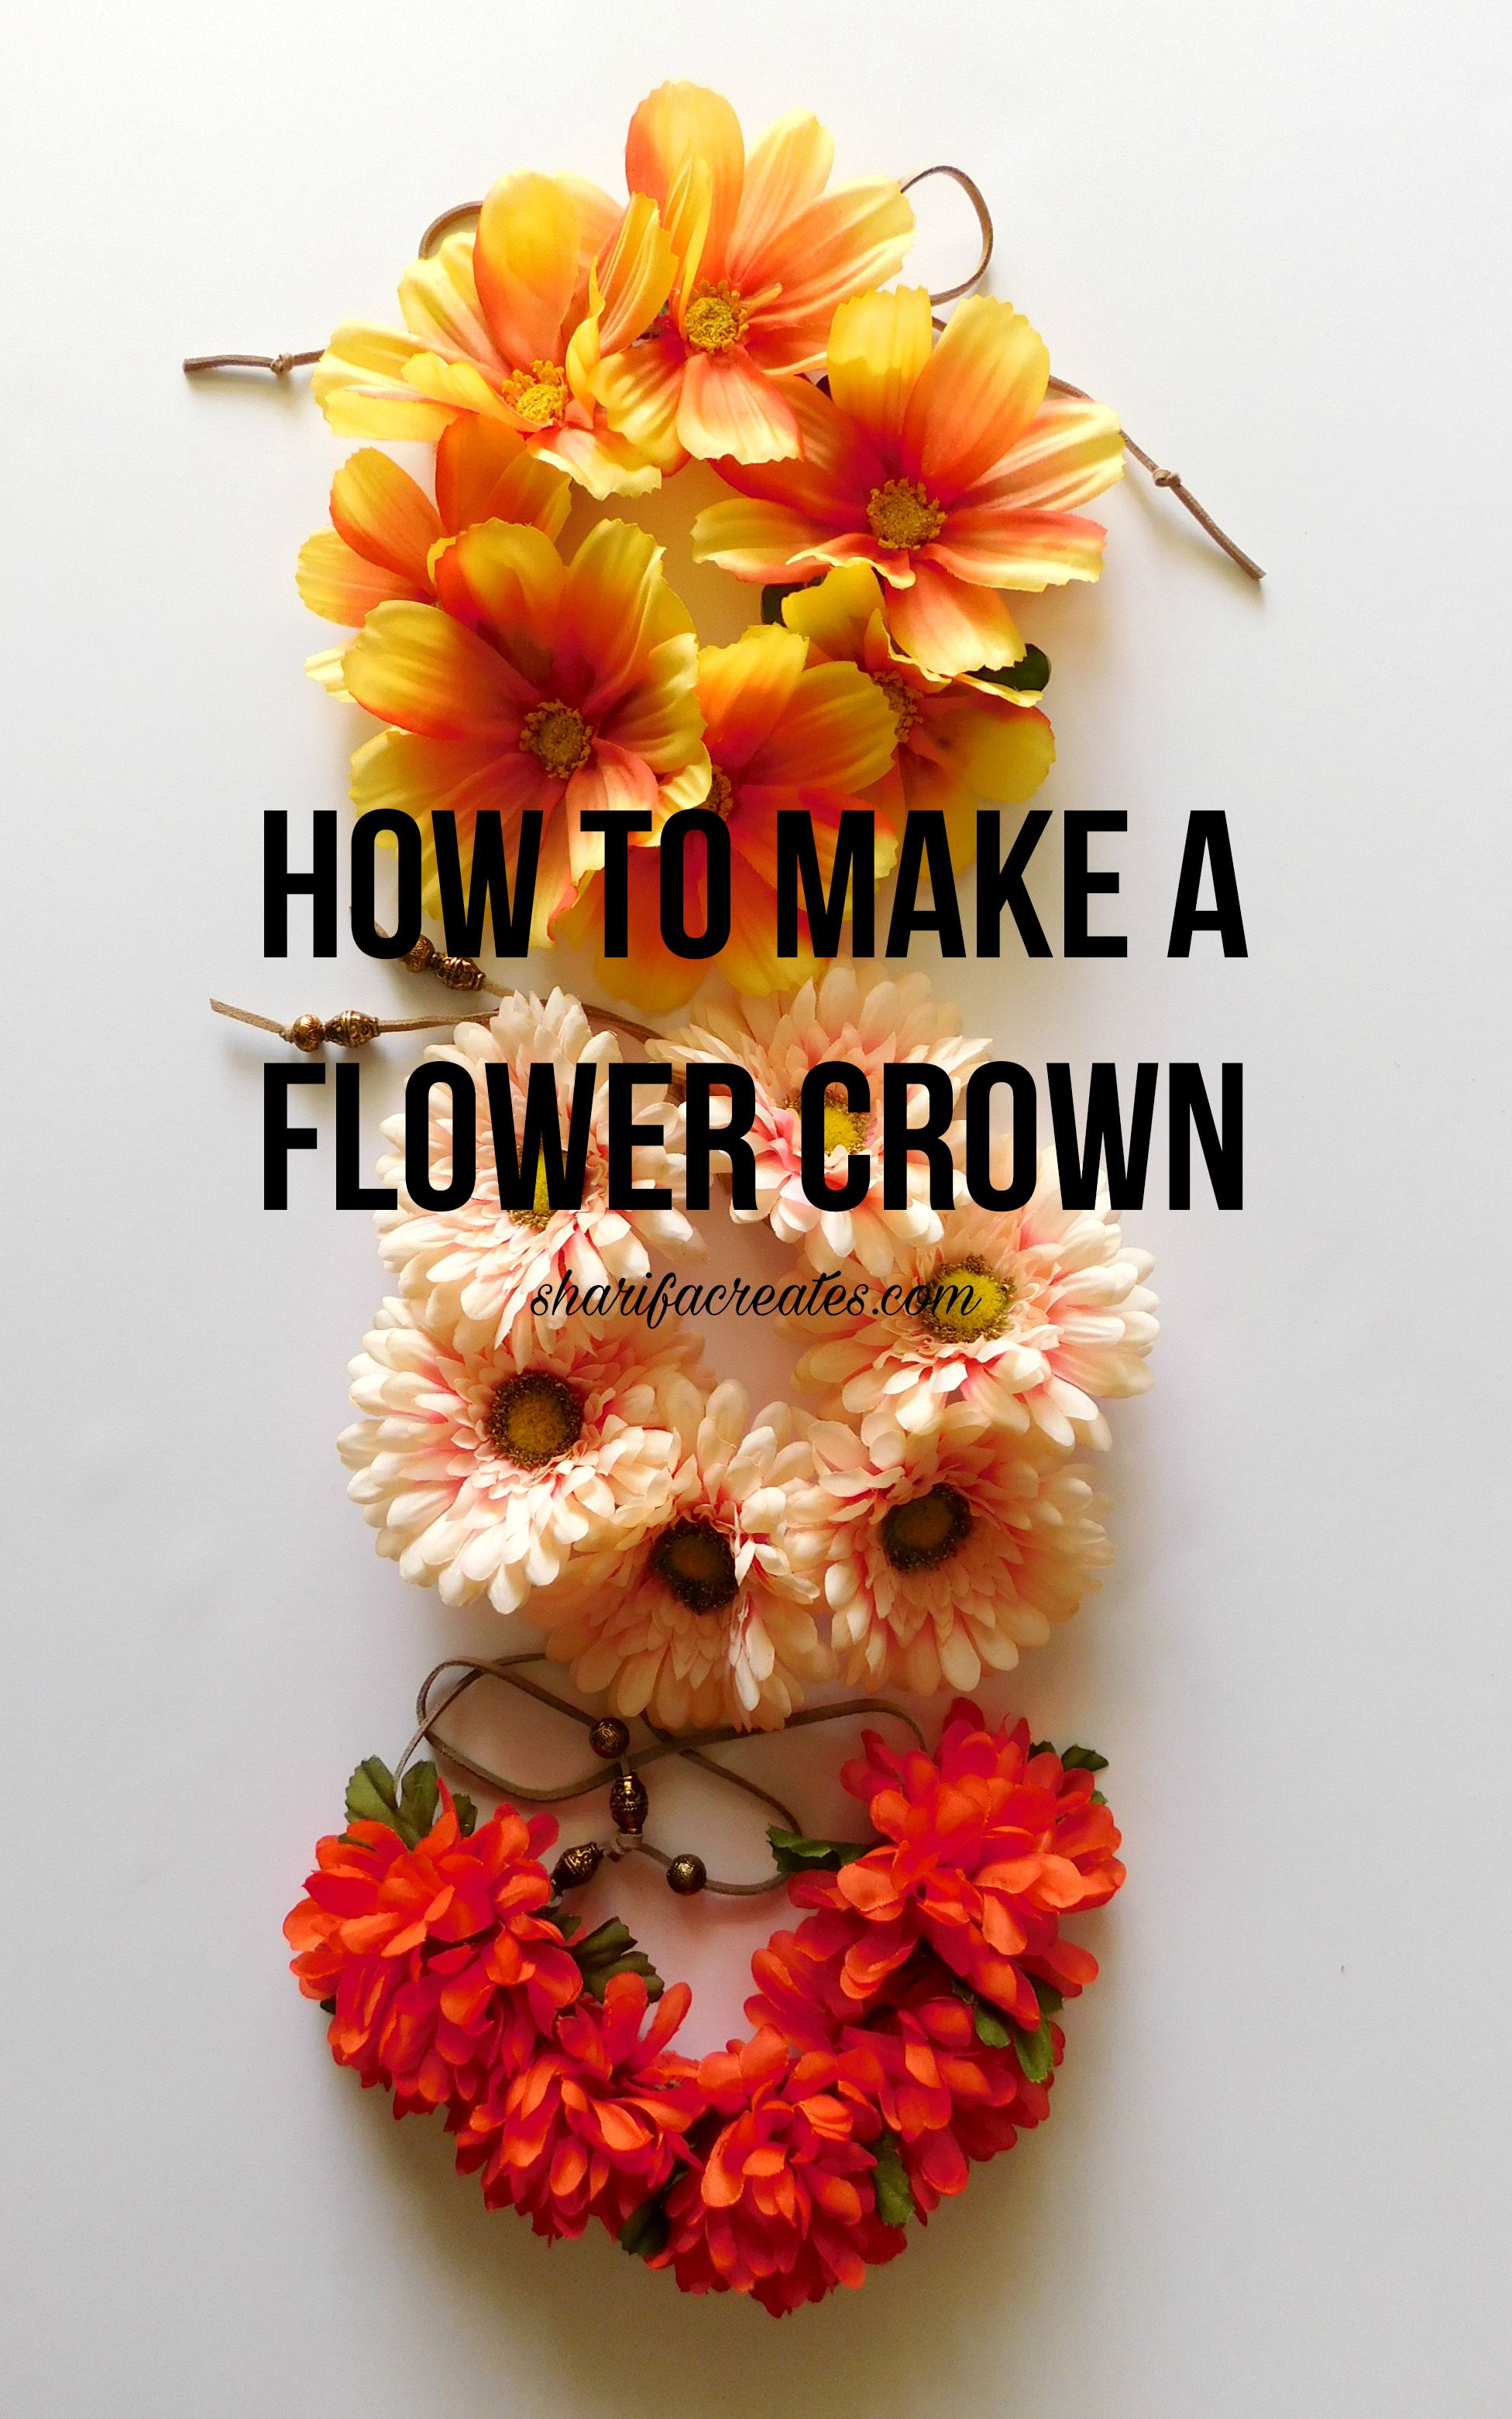 Learn how to make a flower crown in this easy do it yourself learn how to make a flower crown in this easy do it yourself tutorial izmirmasajfo